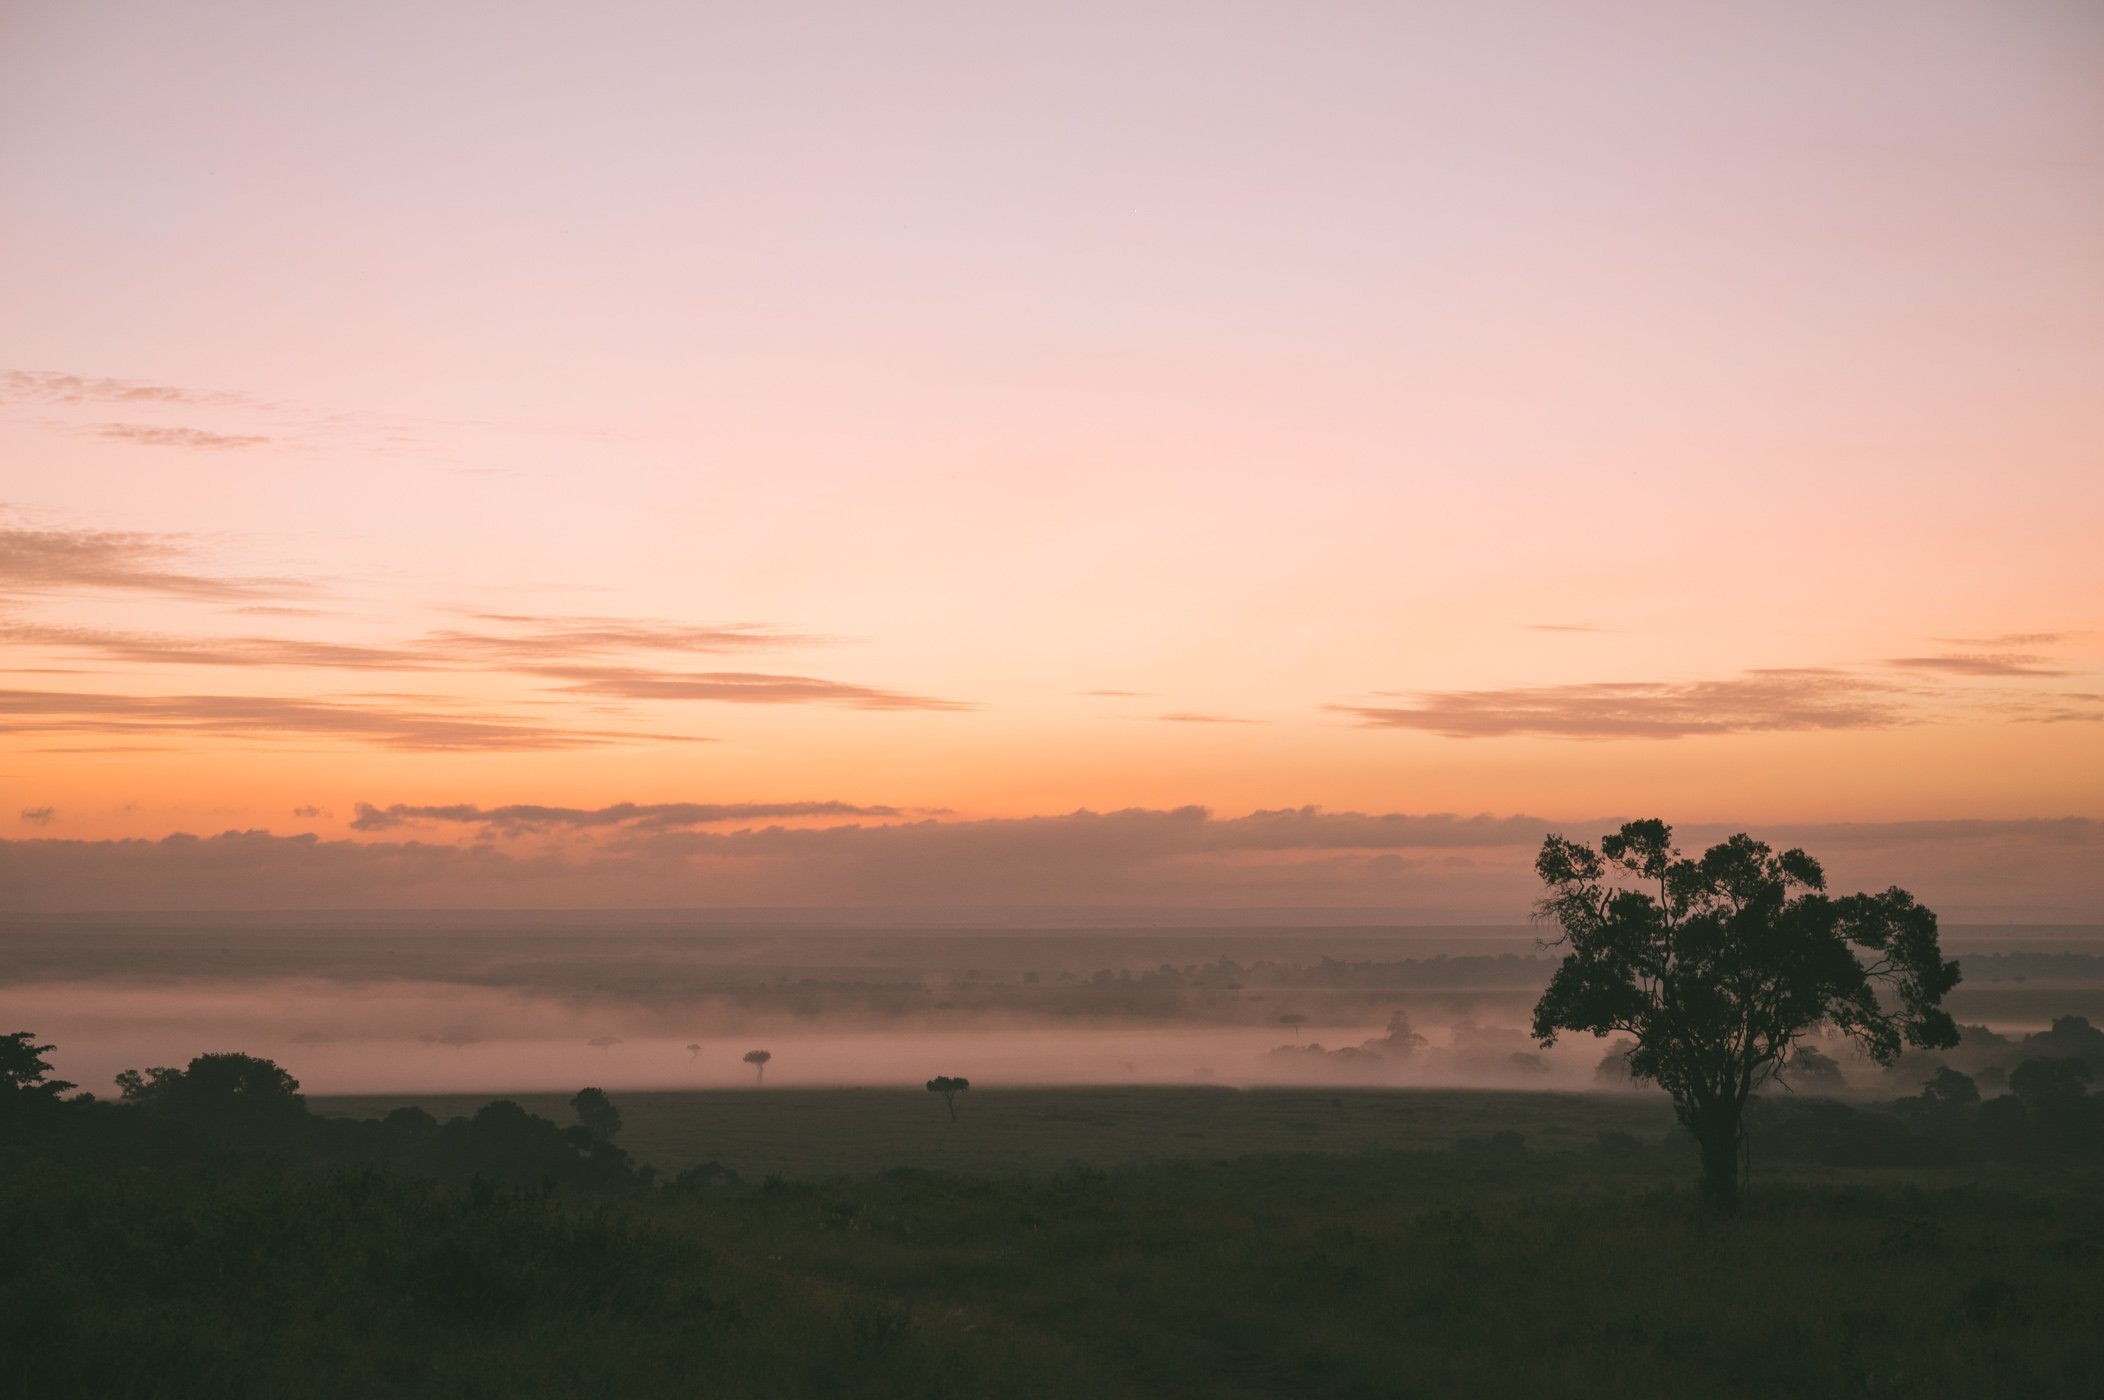 Sunrise as seen from the private concession from andBeyond Bateleur Camp Maasai Mara Kenya